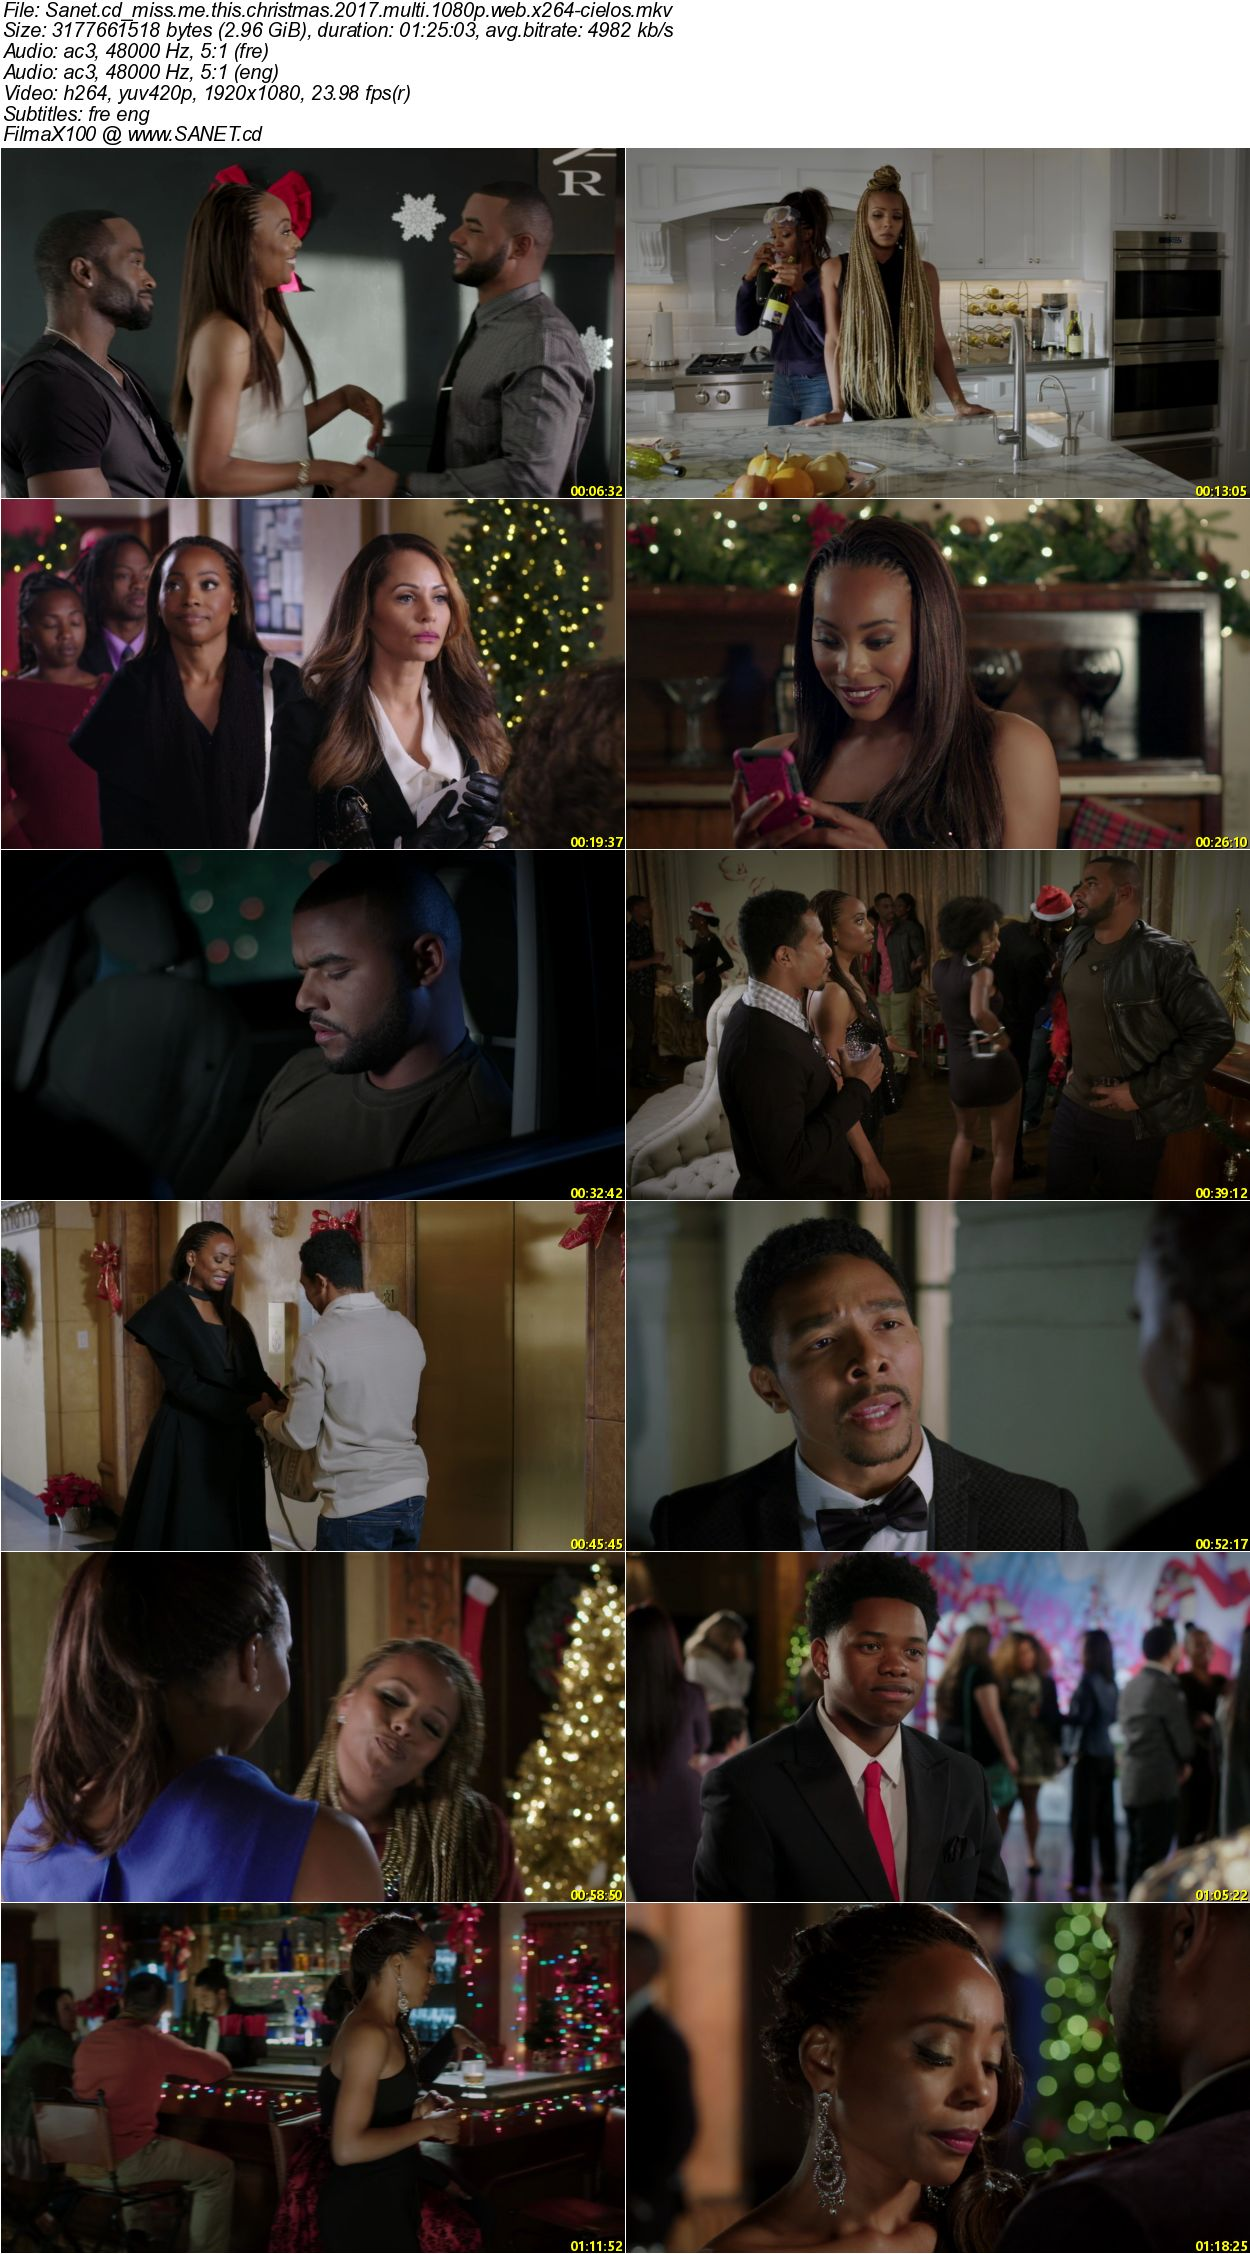 Miss Me This Christmas.Download Miss Me This Christmas 2017 Multi 1080p Web X264